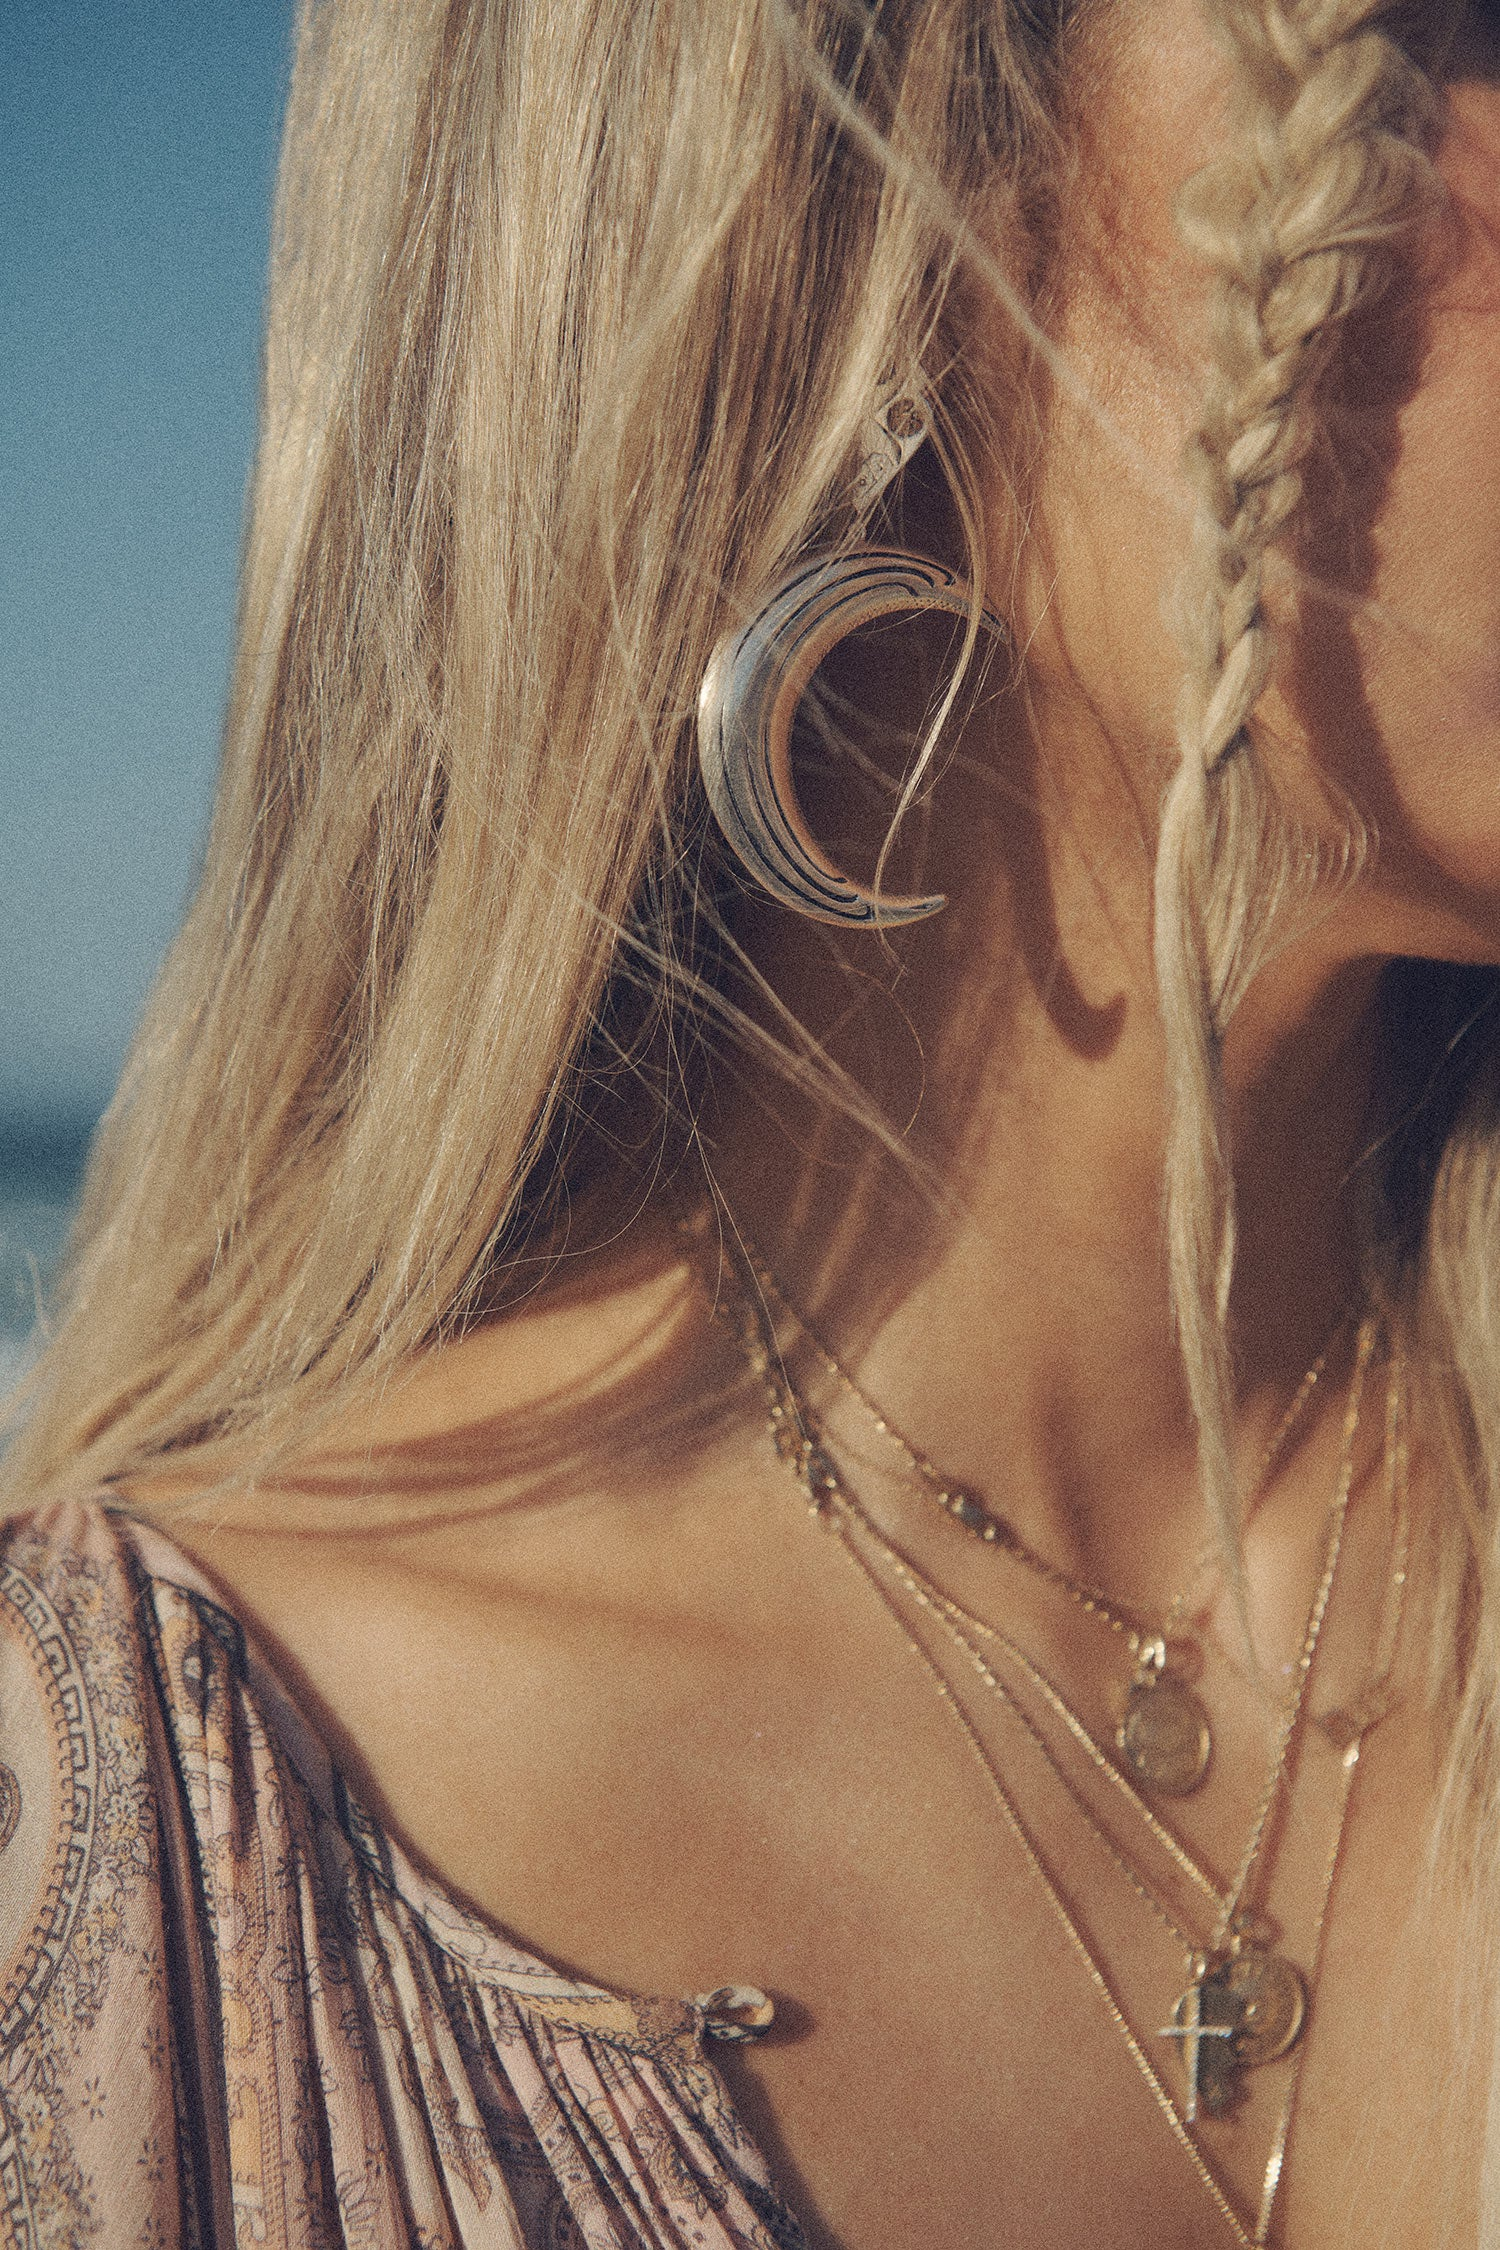 A close-up image of influencer and model, Elle Ferguson, wearing gold jewellery paired with the silver moon-shaped Lucie Luna Earrings.